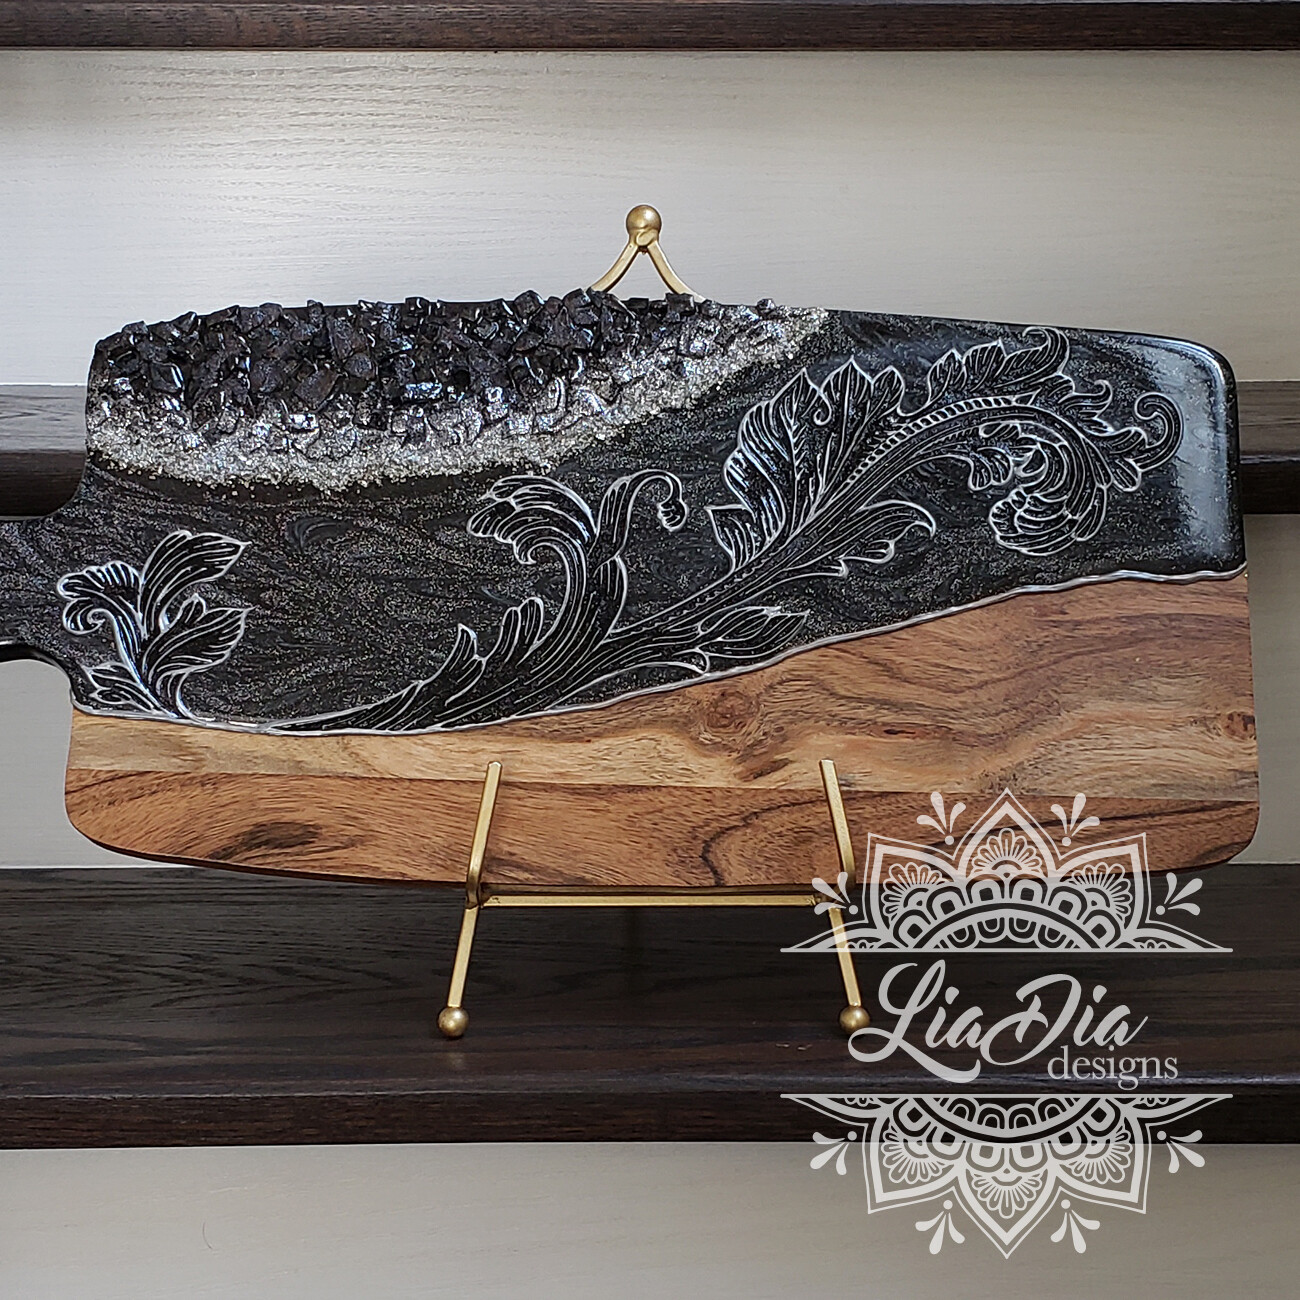 Victorian Flourish Resin Geode Style Charcuterie Cheese Paddle Board